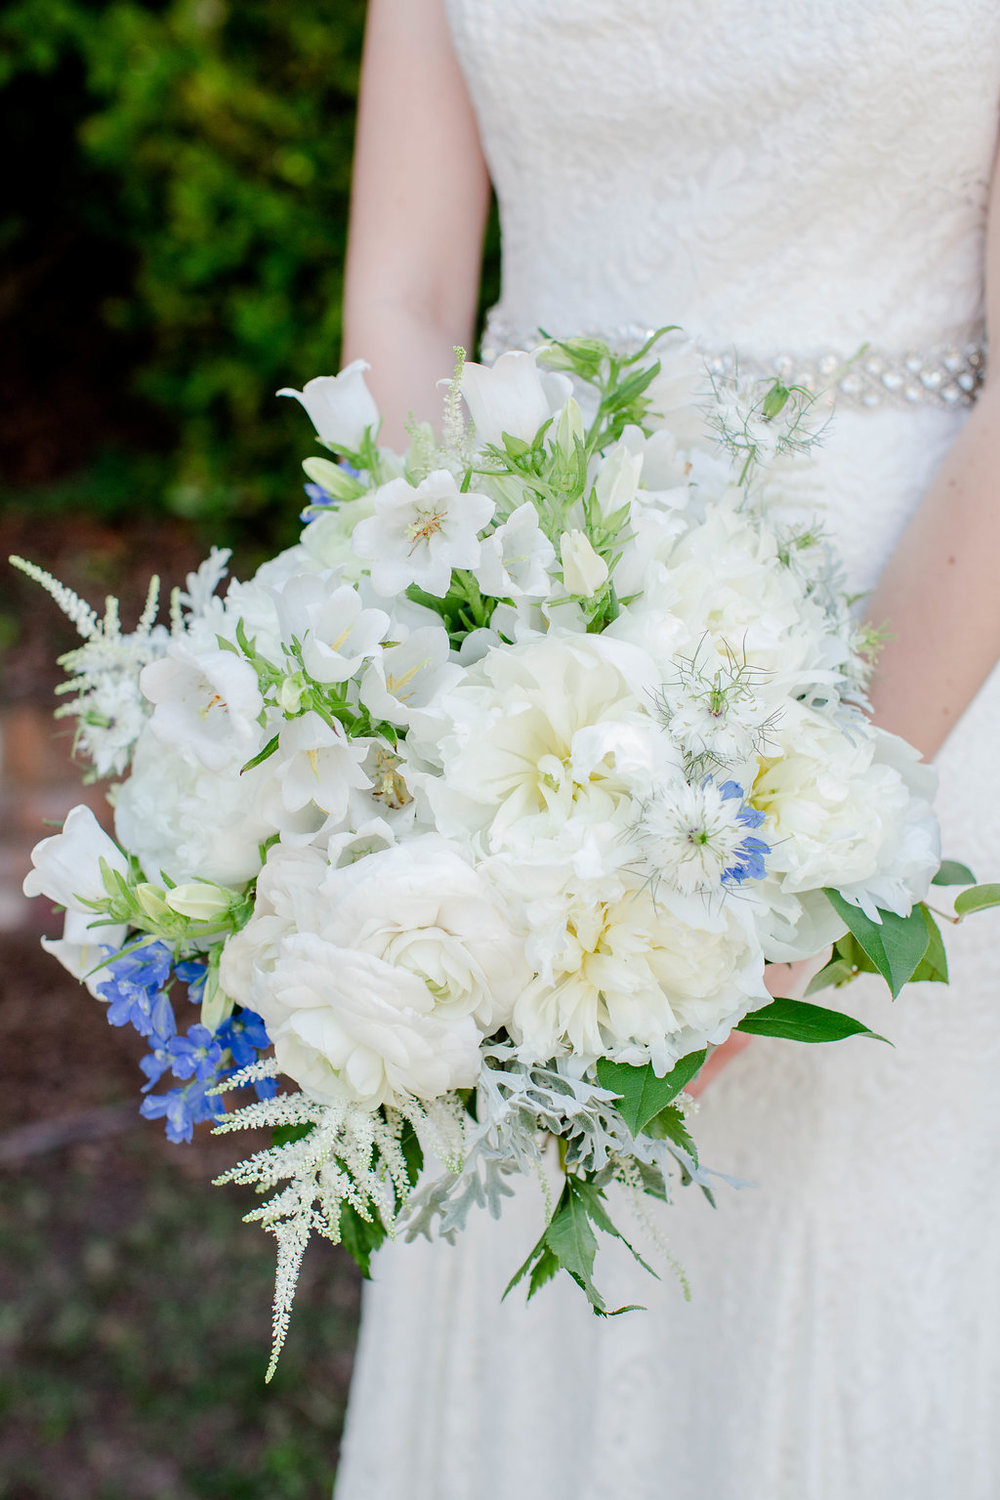 For a gathered look - peonies+ranunculus+bell flowers+scabiosa+forget me nots+dusty miller+astillbe